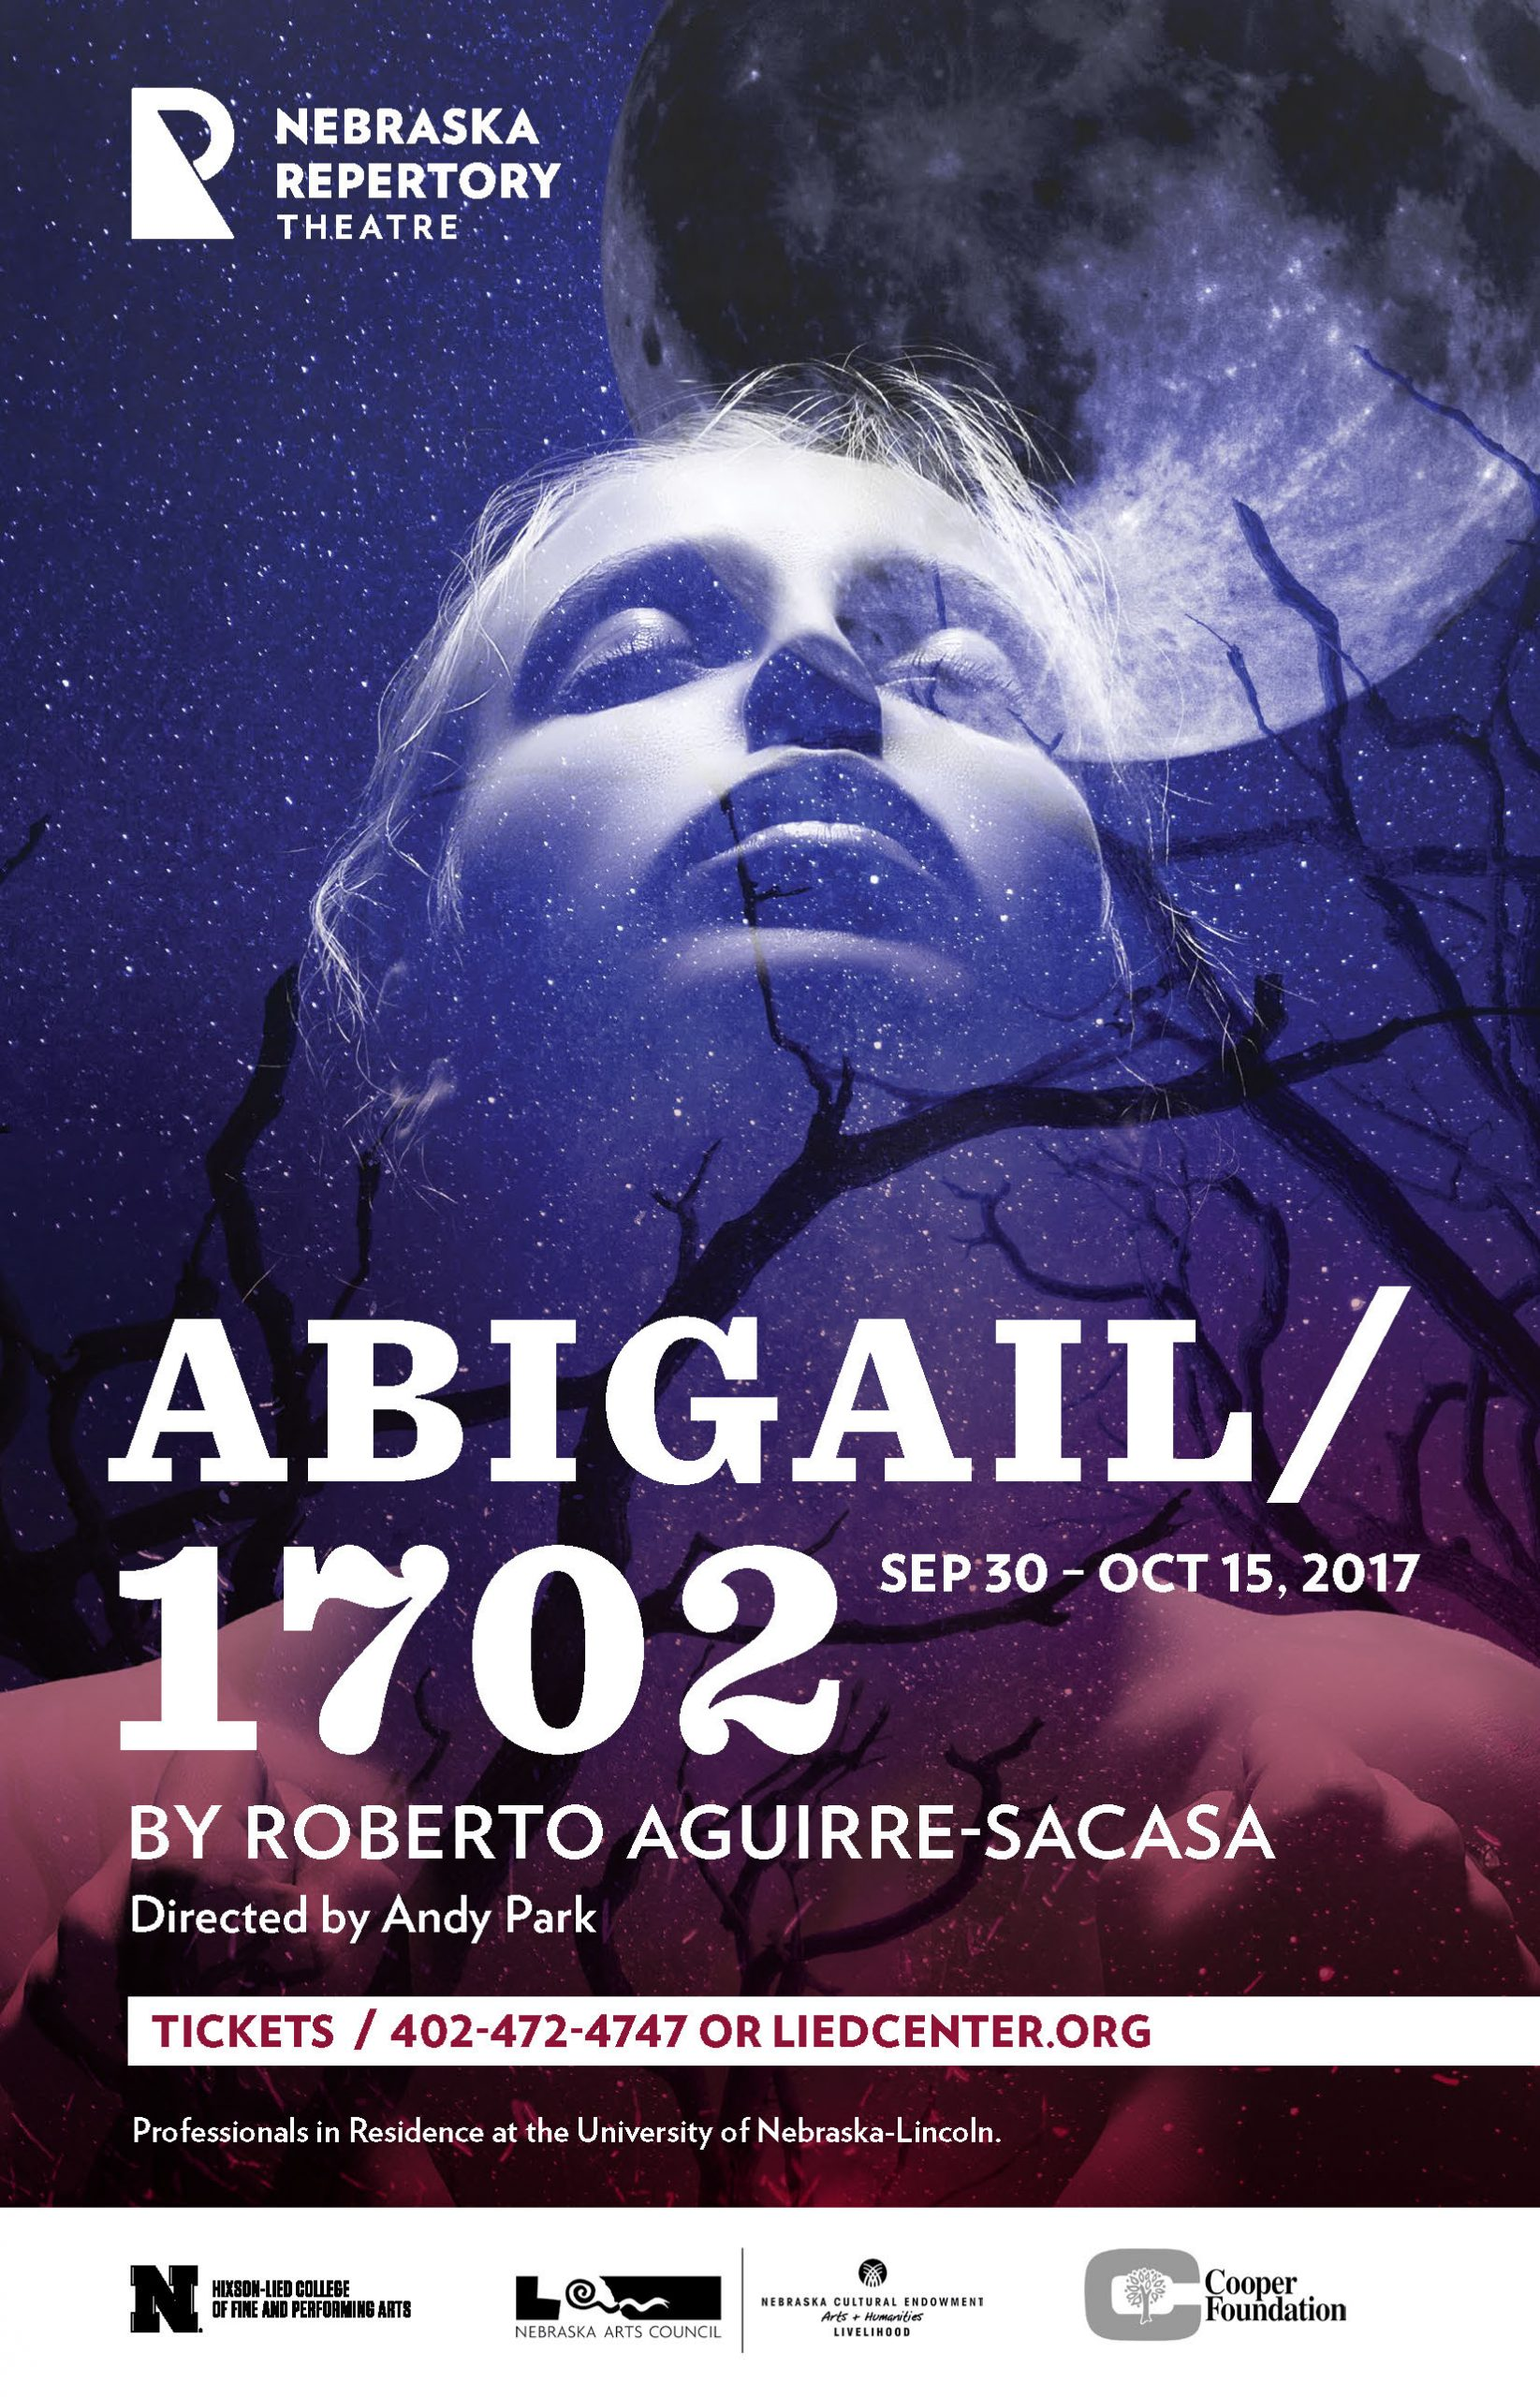 A poster with the headline 'Abigail/1702' overlaid on a moody purple-and-black image of a girl with her face upturned in a dark forest.